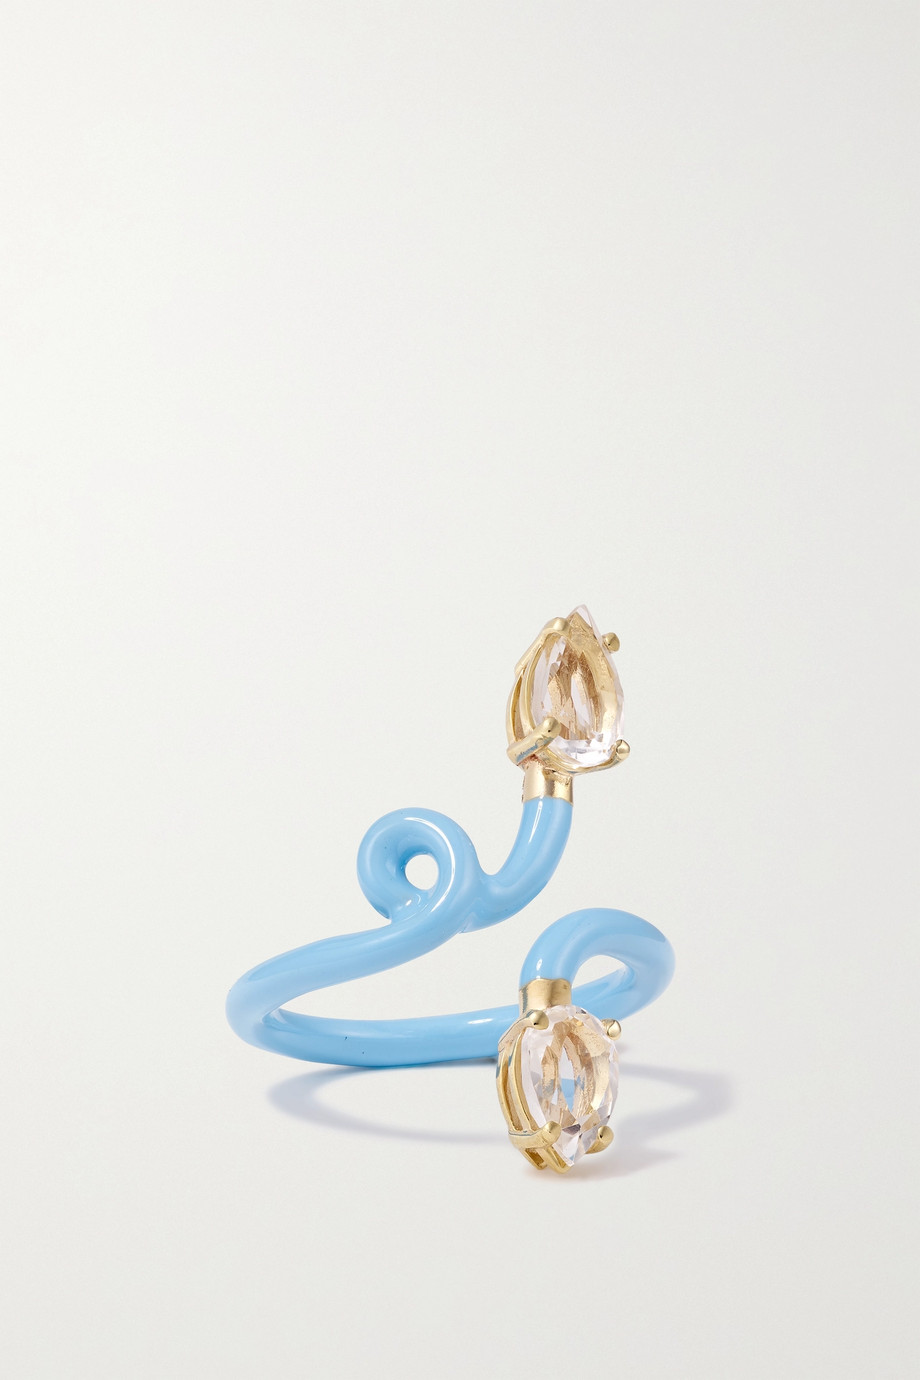 BEA BONGIASCA Vine Tendril 9-karat gold, enamel and rock crystal ring